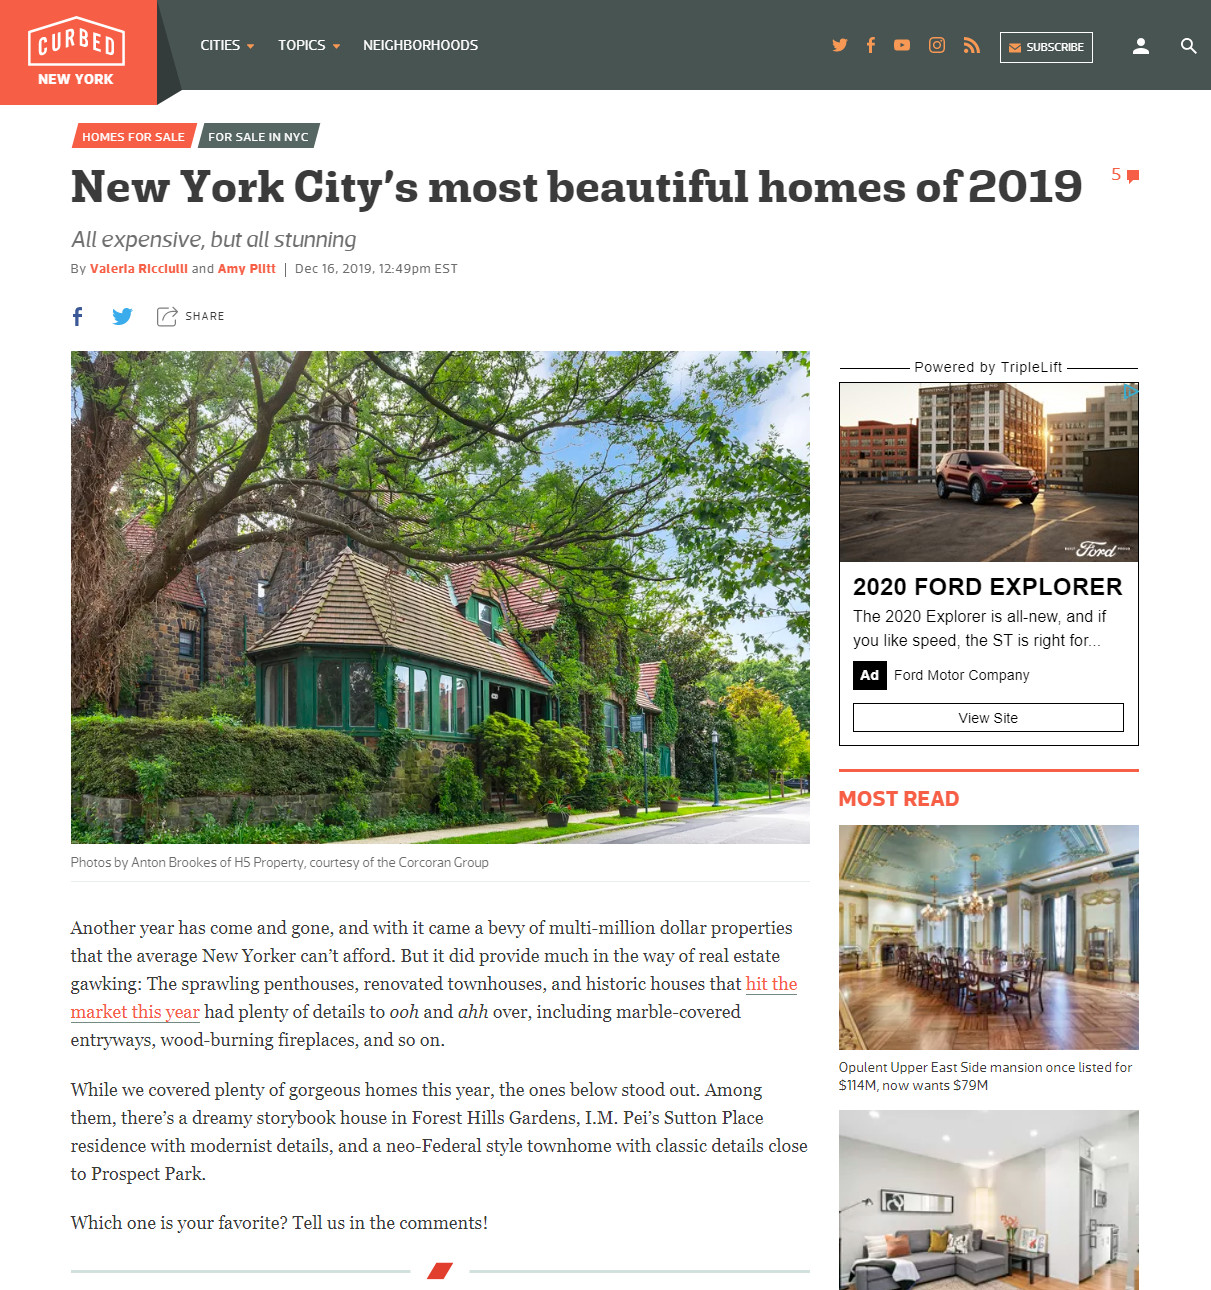 Curbed - New York City's Most Beautiful Homes